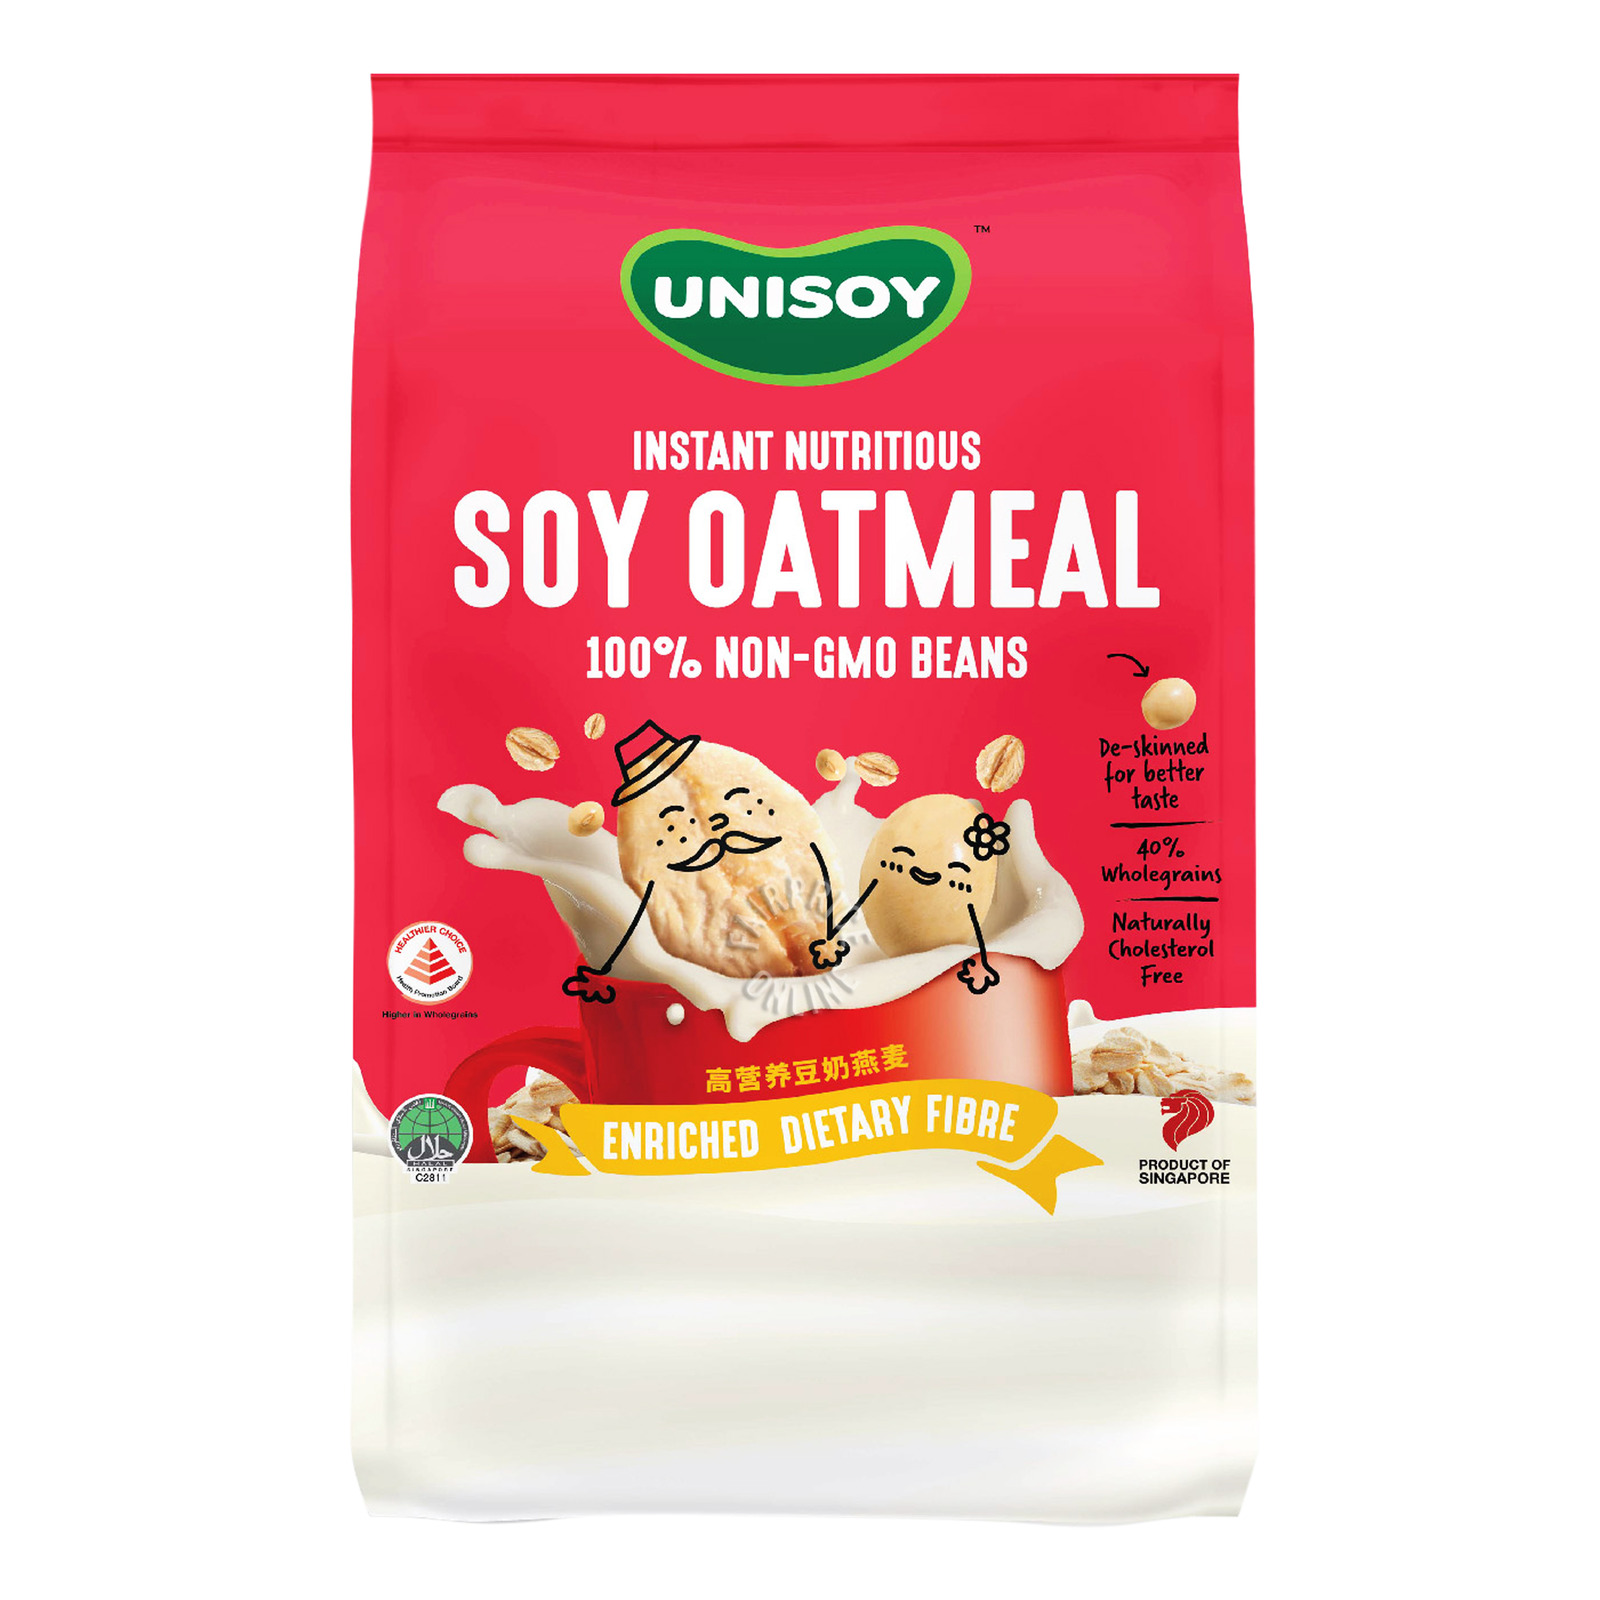 UNISOY Instant Nutritious Soya Oatmeal 12sX40g